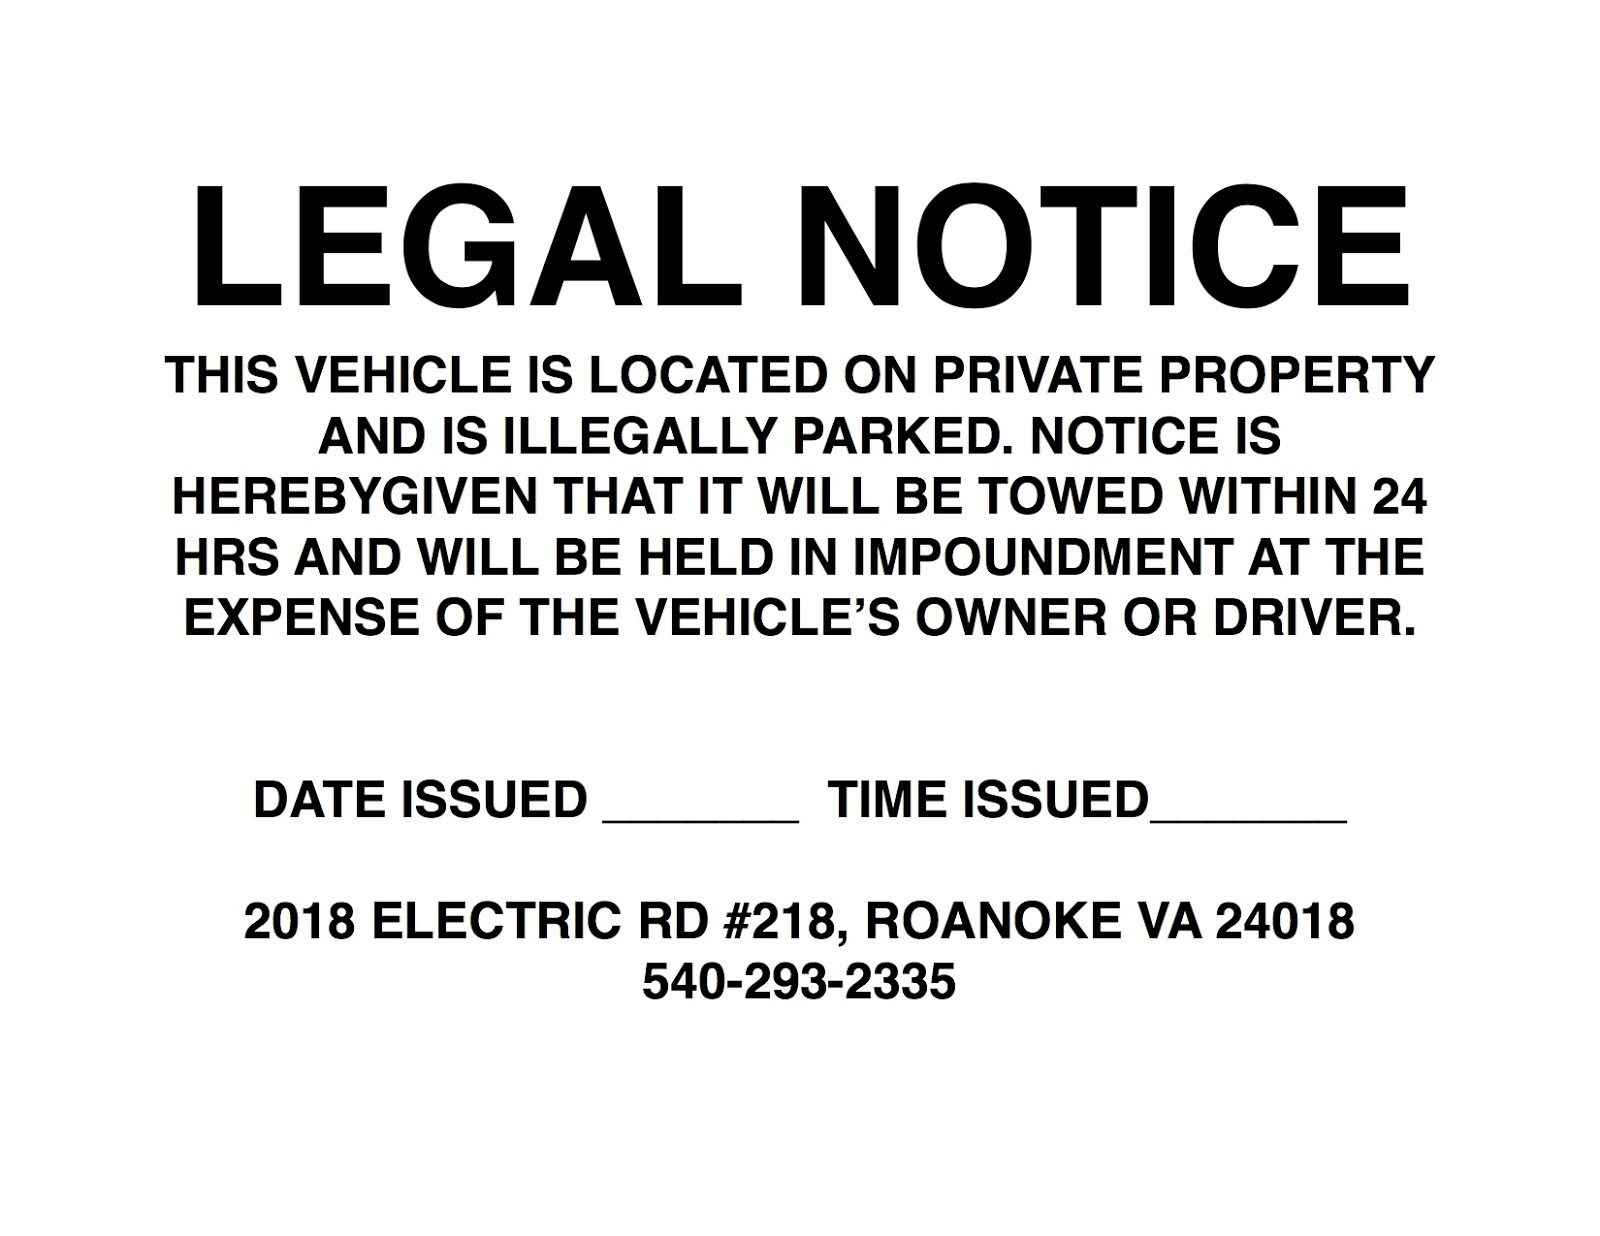 How To Get Car Out Of Impound Without License